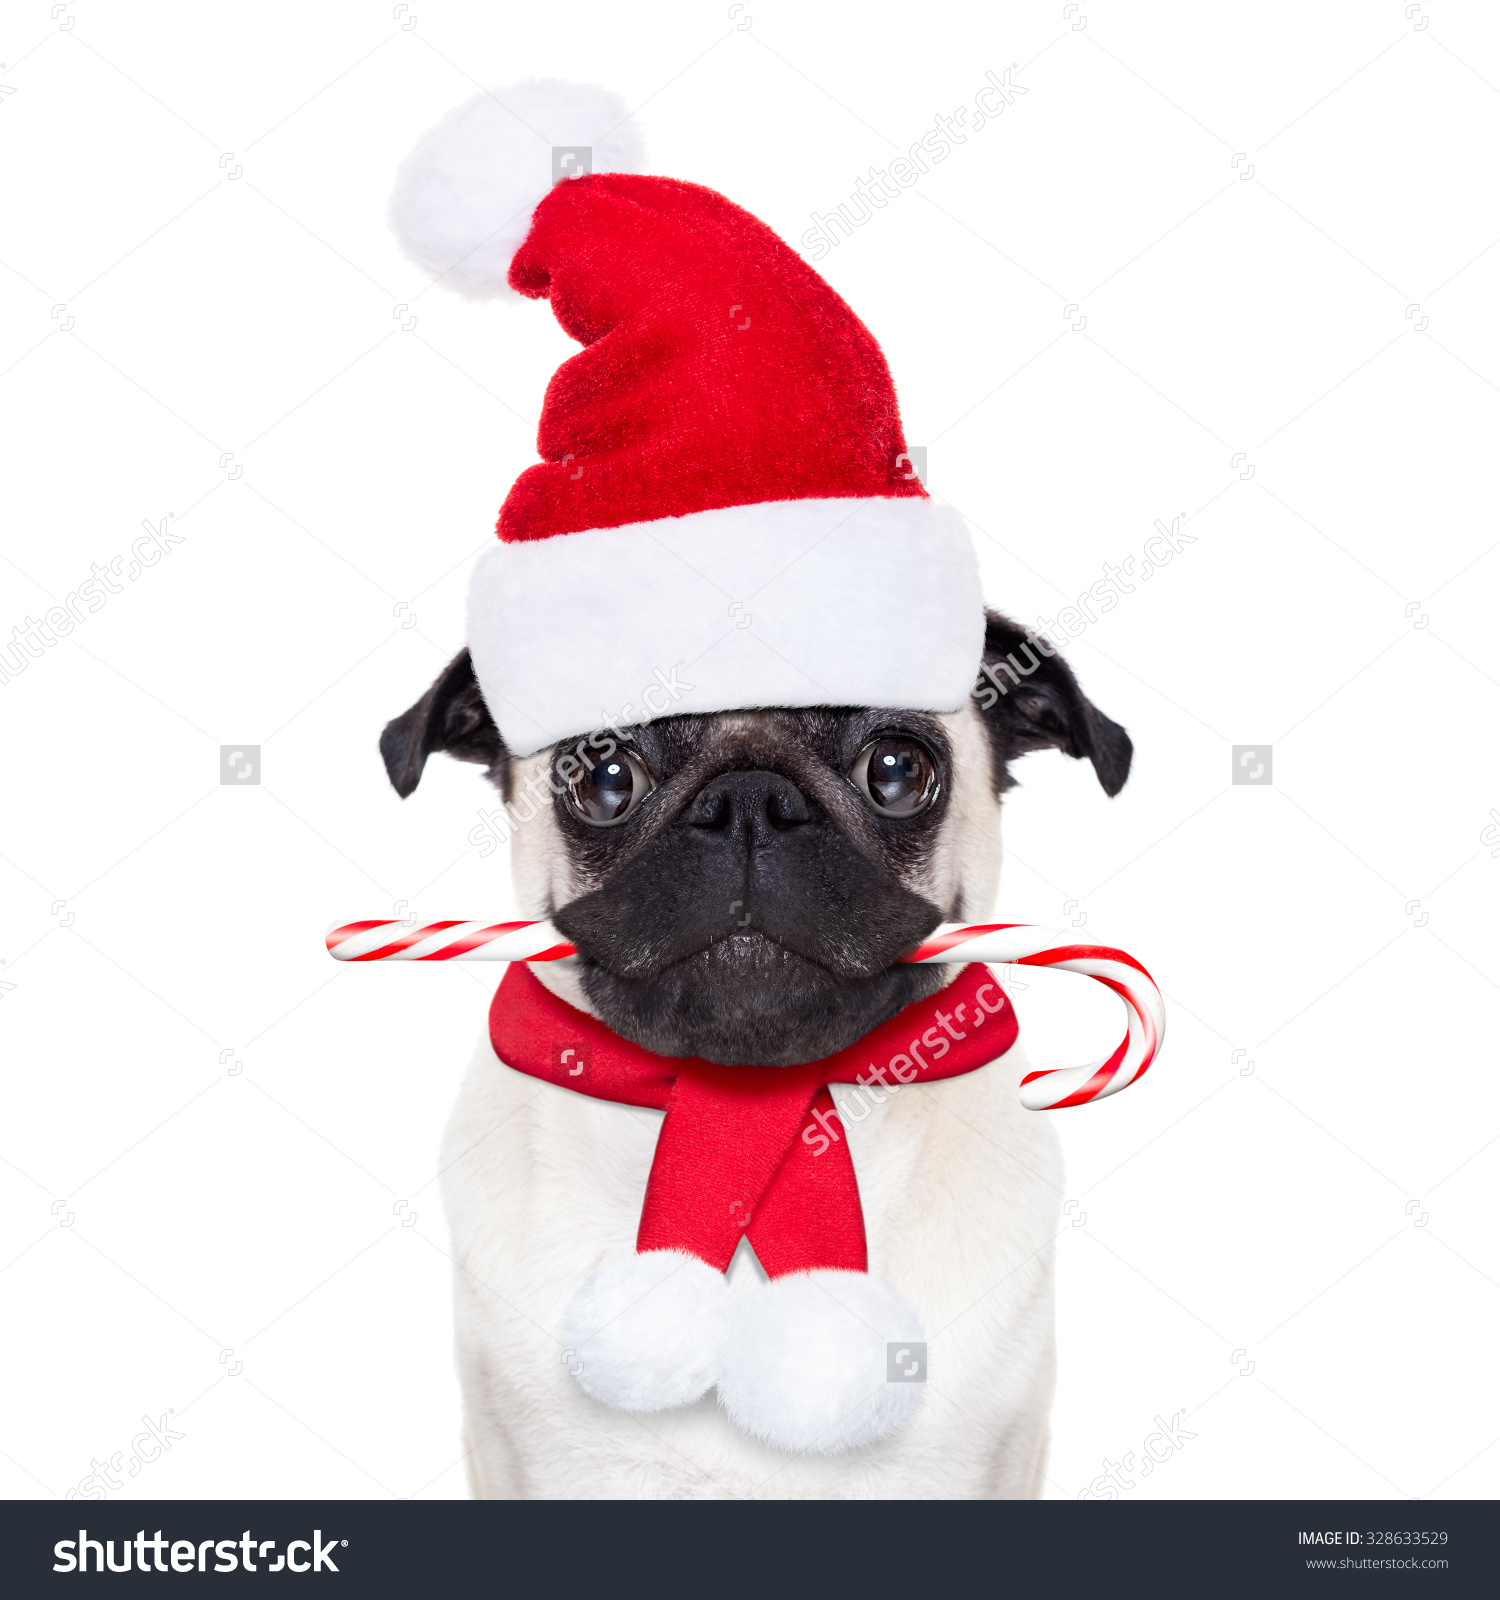 Pug Dog As Santa Claus With A Sugar Candy Cane In Mouth, Isolated.